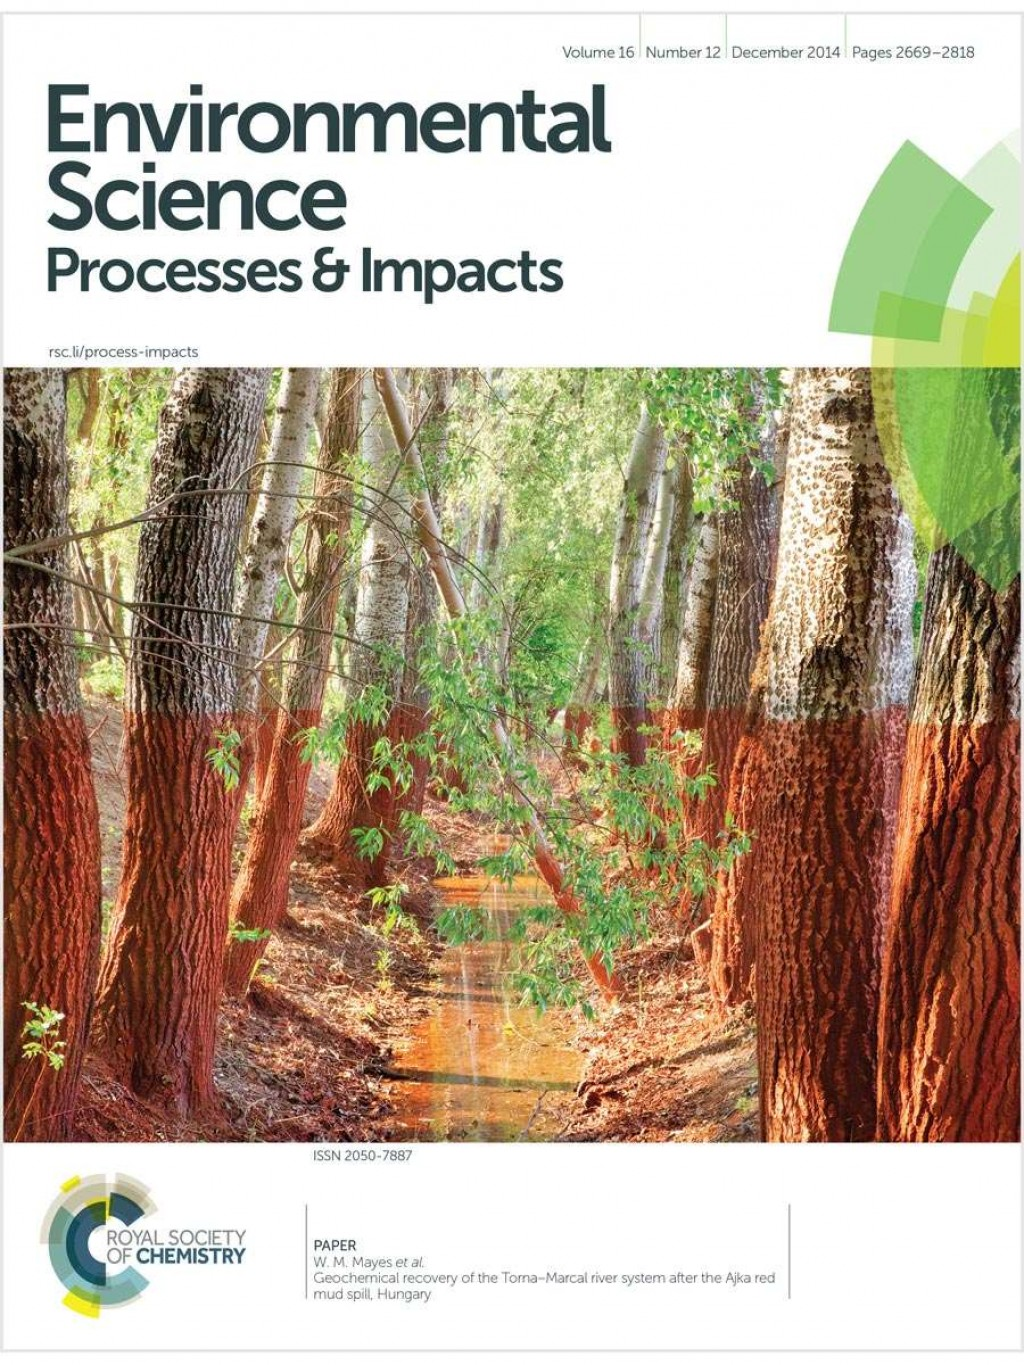 023 Research Paper Environmental Chemistry Topics 1036 Env Science Process And Impacts F2c Rare Large